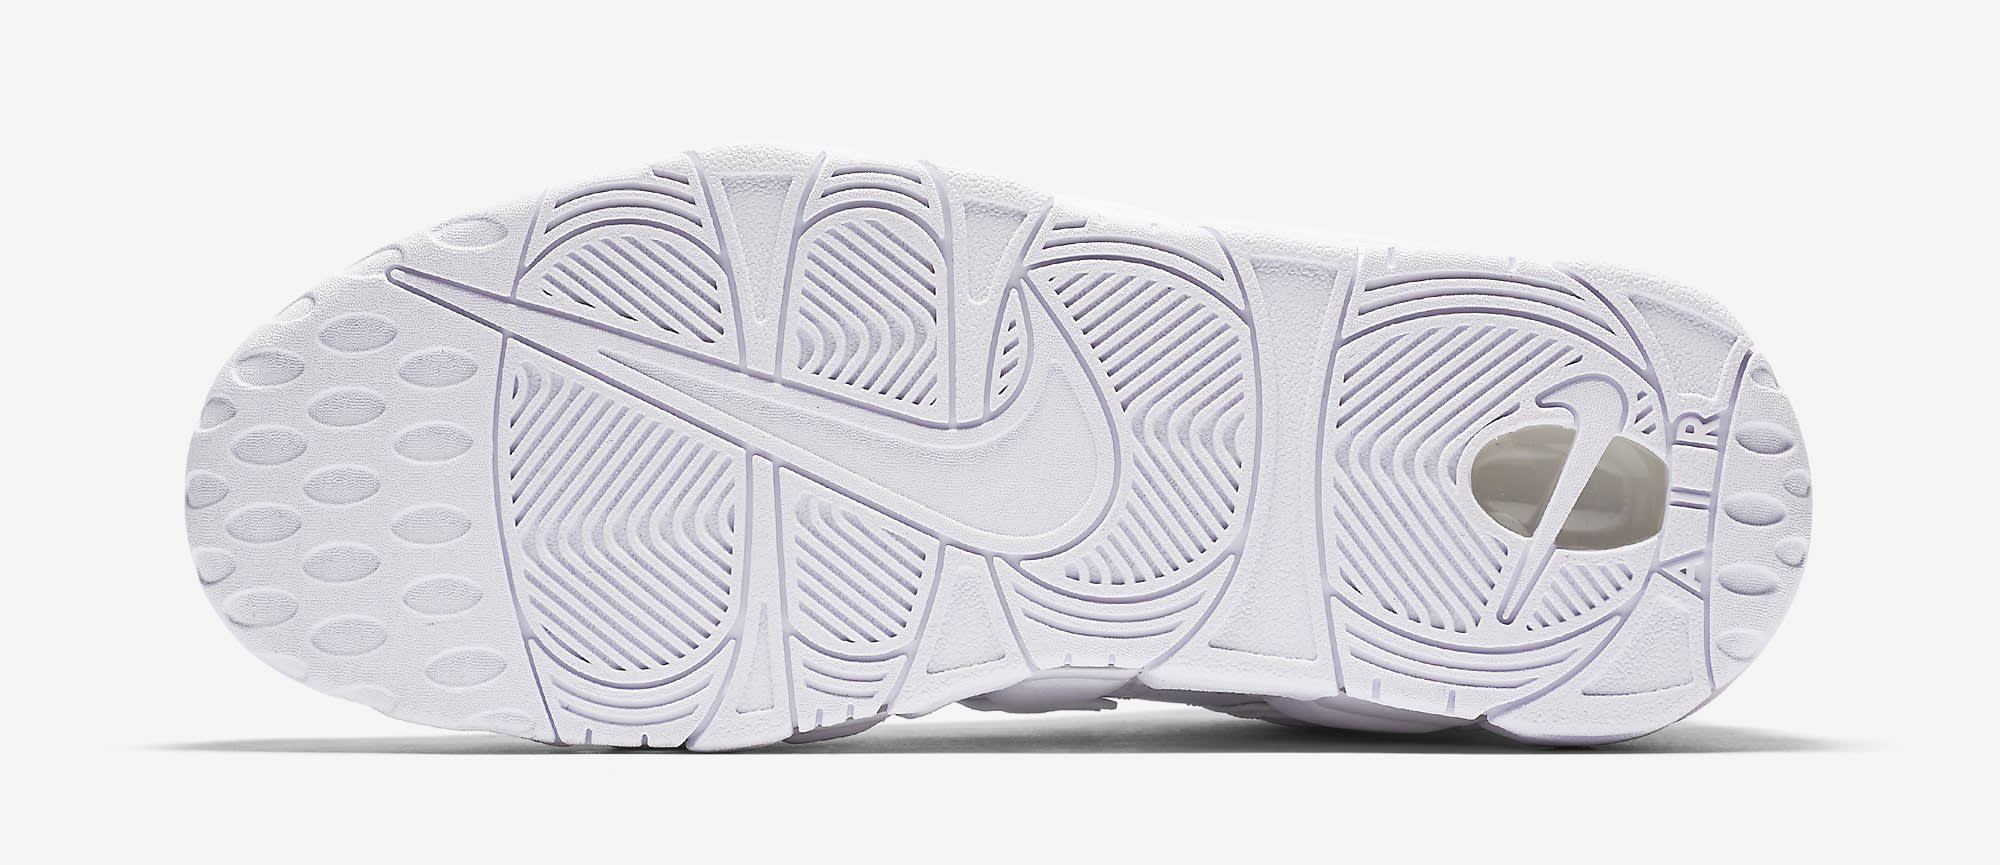 Triple White Nike Air More Uptempo 921948-100 Sole